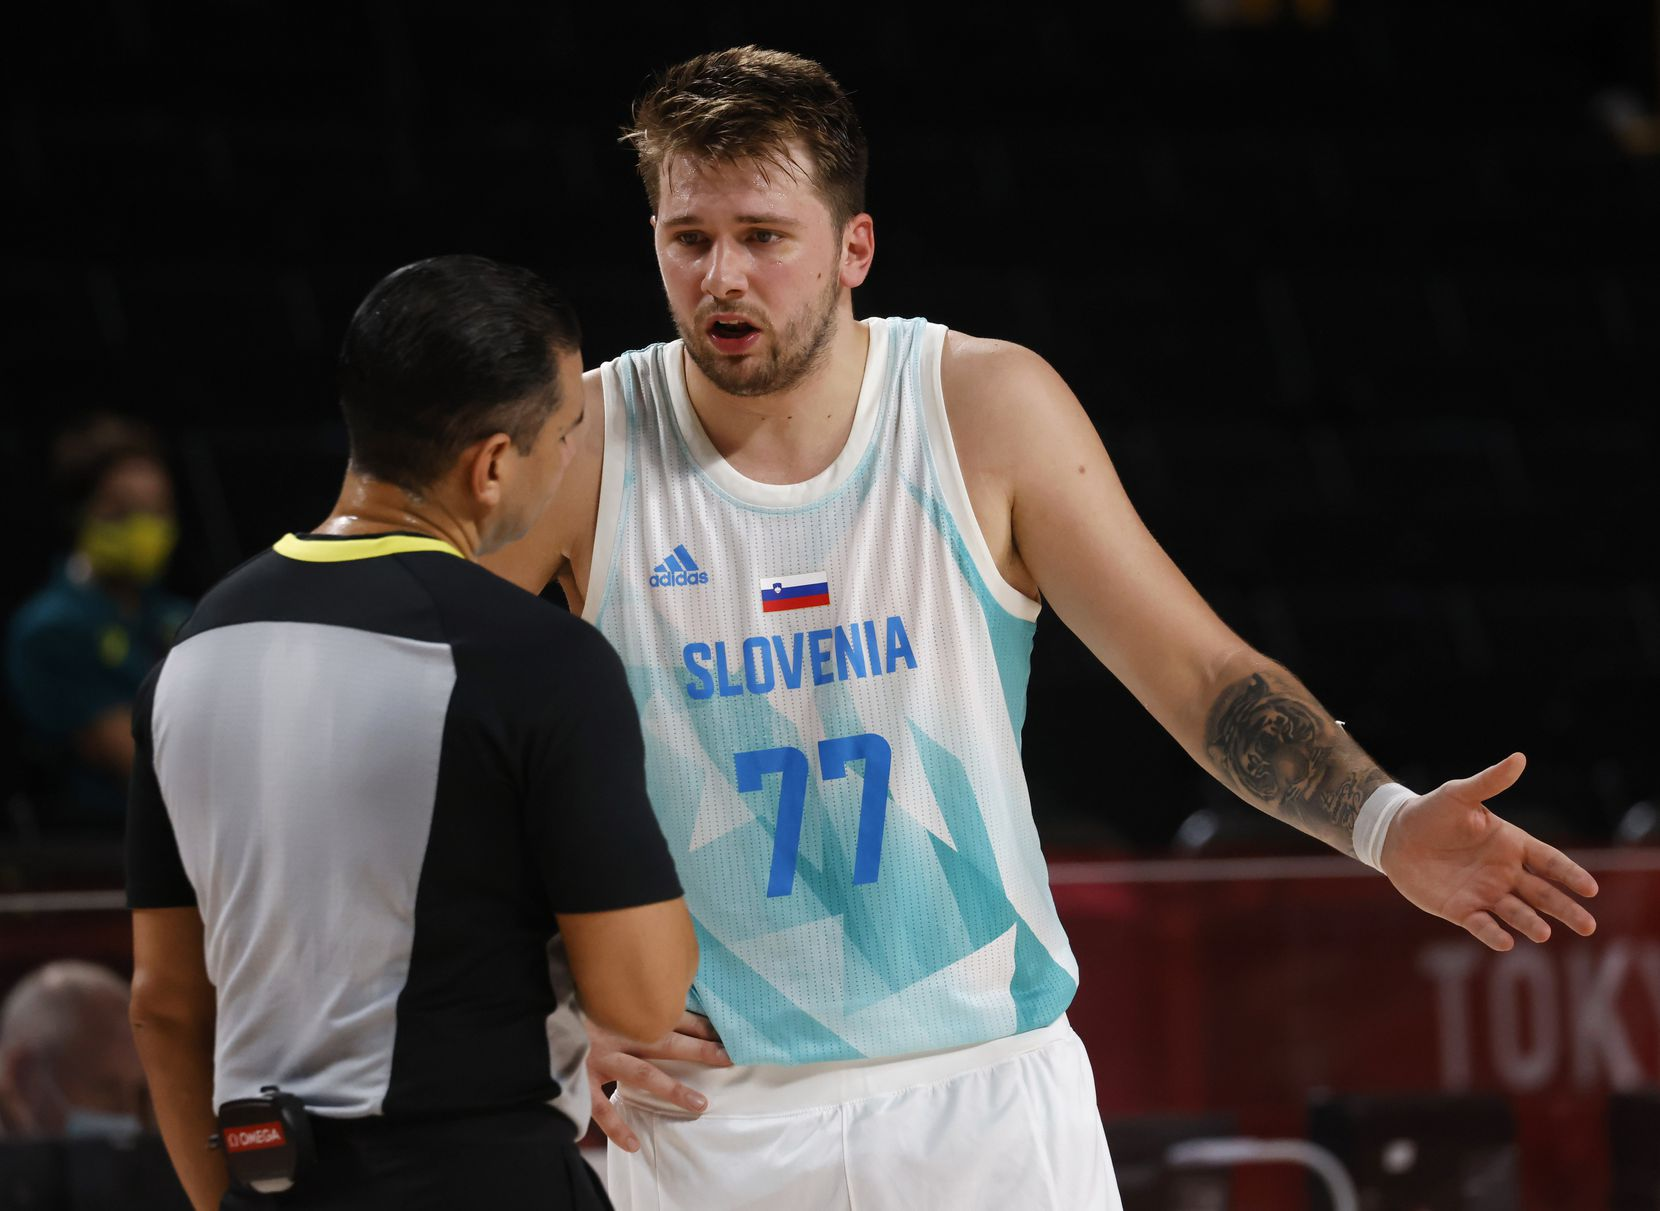 Slovenia's Luka Doncic (77) questions an official after a play in a game against Australia during the second quarter of play in the bronze medal basketball game at the postponed 2020 Tokyo Olympics at Saitama Super Arena, on Saturday, August 7, 2021, in Saitama, Japan. (Vernon Bryant/The Dallas Morning News)